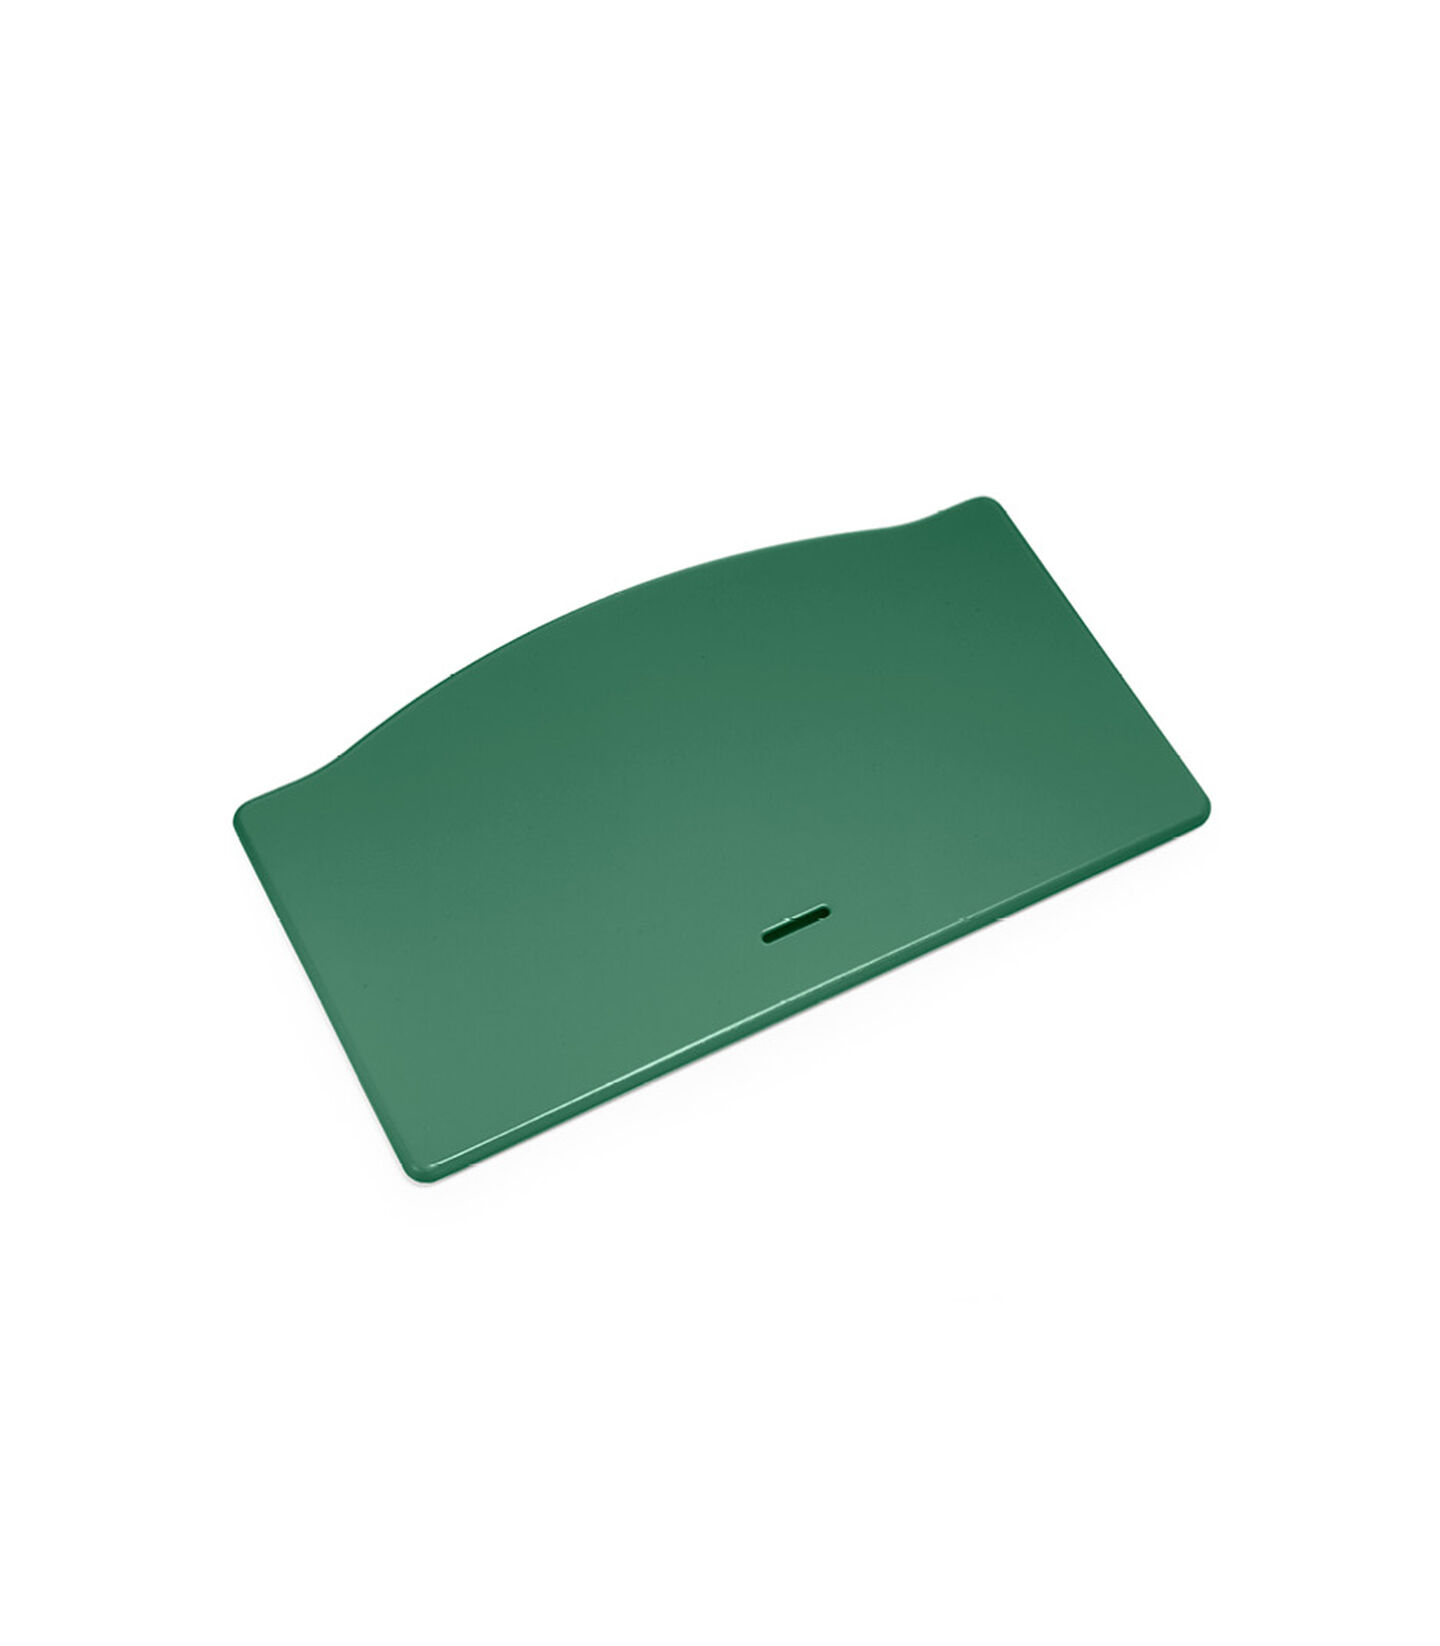 Tripp Trapp® Seatplate Forest Green, Verde Bosque, mainview view 2